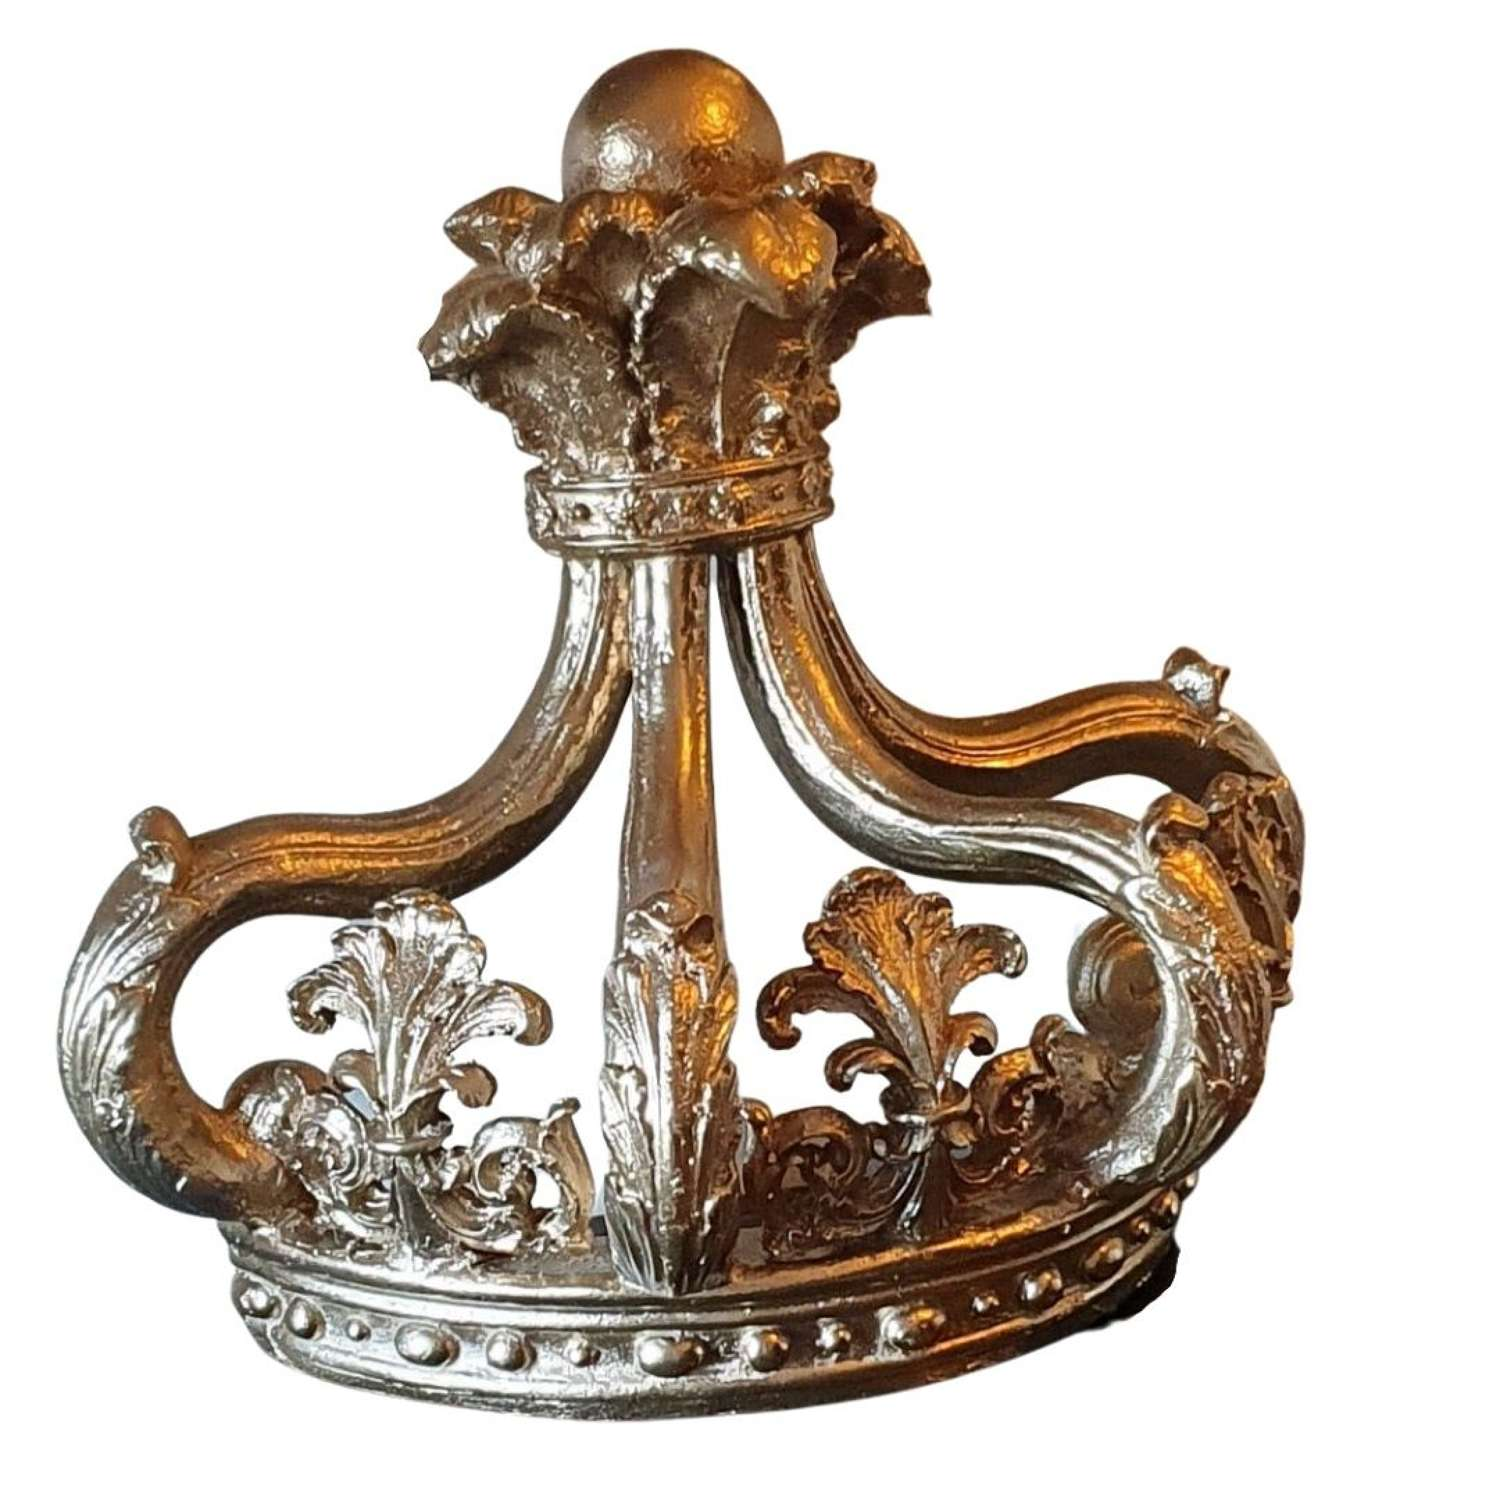 Decorative Gold Crown